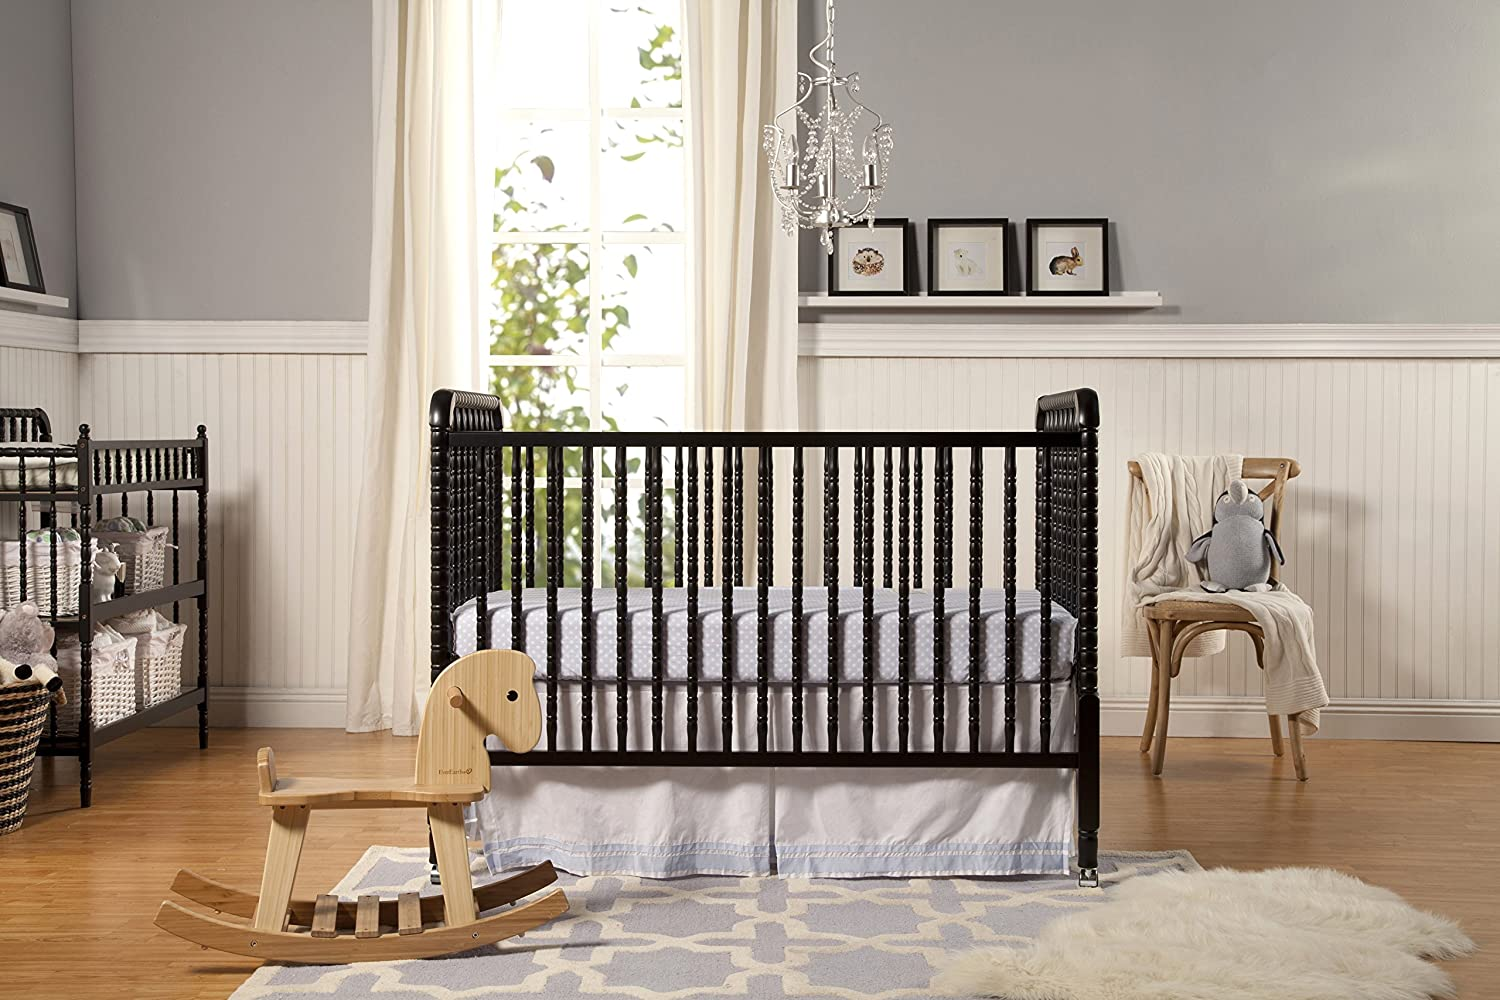 Contemporary white wooden jenny lind crib for your baby to sleep - Amazon Com Davnci Jenny Lind 3 In 1 Convertable Crib Ebony Million Dollar Baby Davinci Jenny Lind Crib Baby